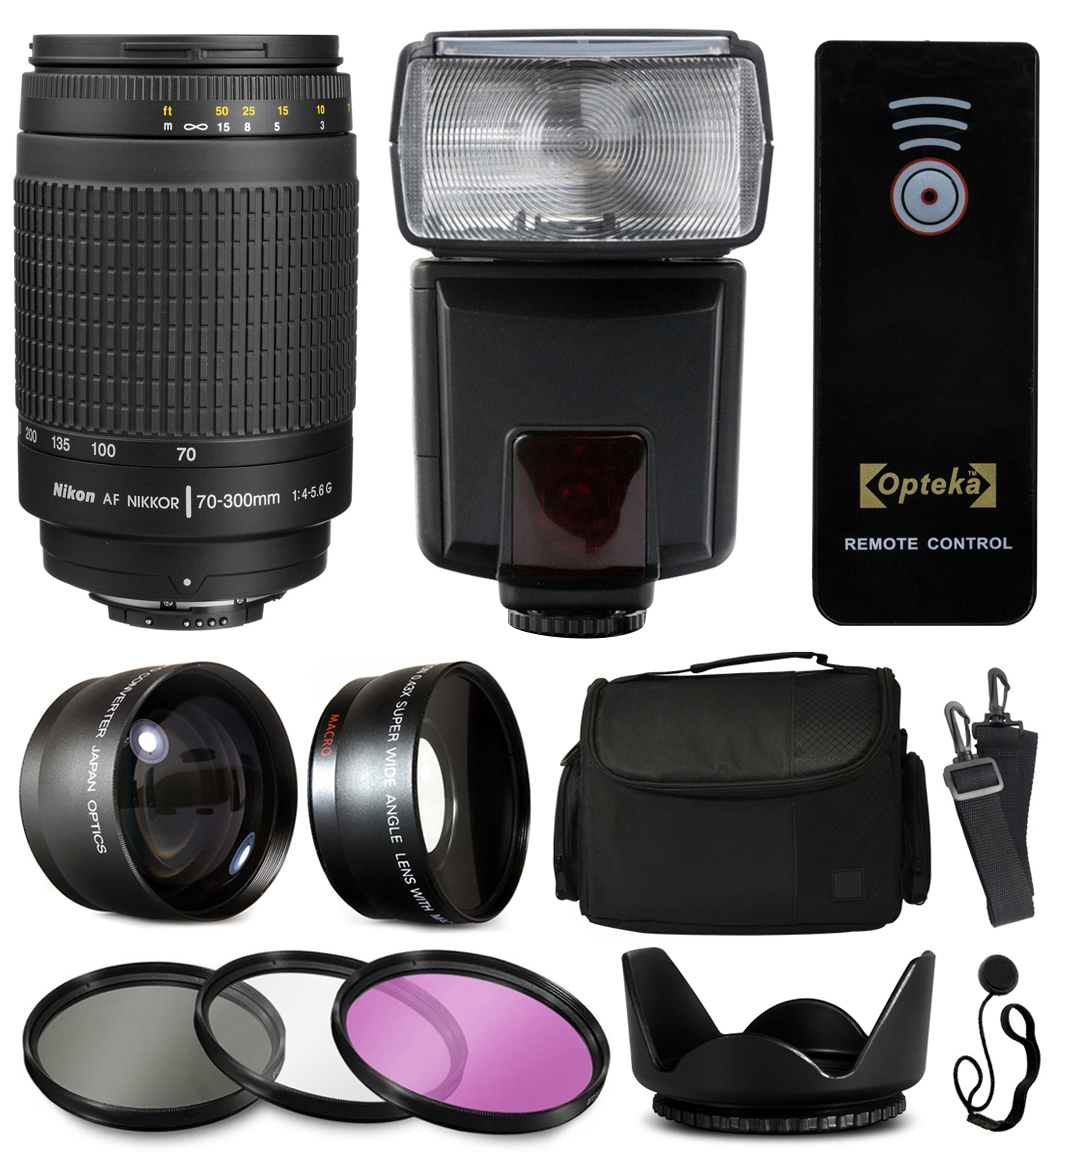 Nikon AF 70-300mm Manual Lens + Accessories Bundle with 2.2x & 0.43x Adapters + Flash + Case + Filters for Nikon DF D7200 D7100 D7000 D5500 D5300 D5200 D5100 D5000 D3300 D3200 D3100 D3000 D300S D90